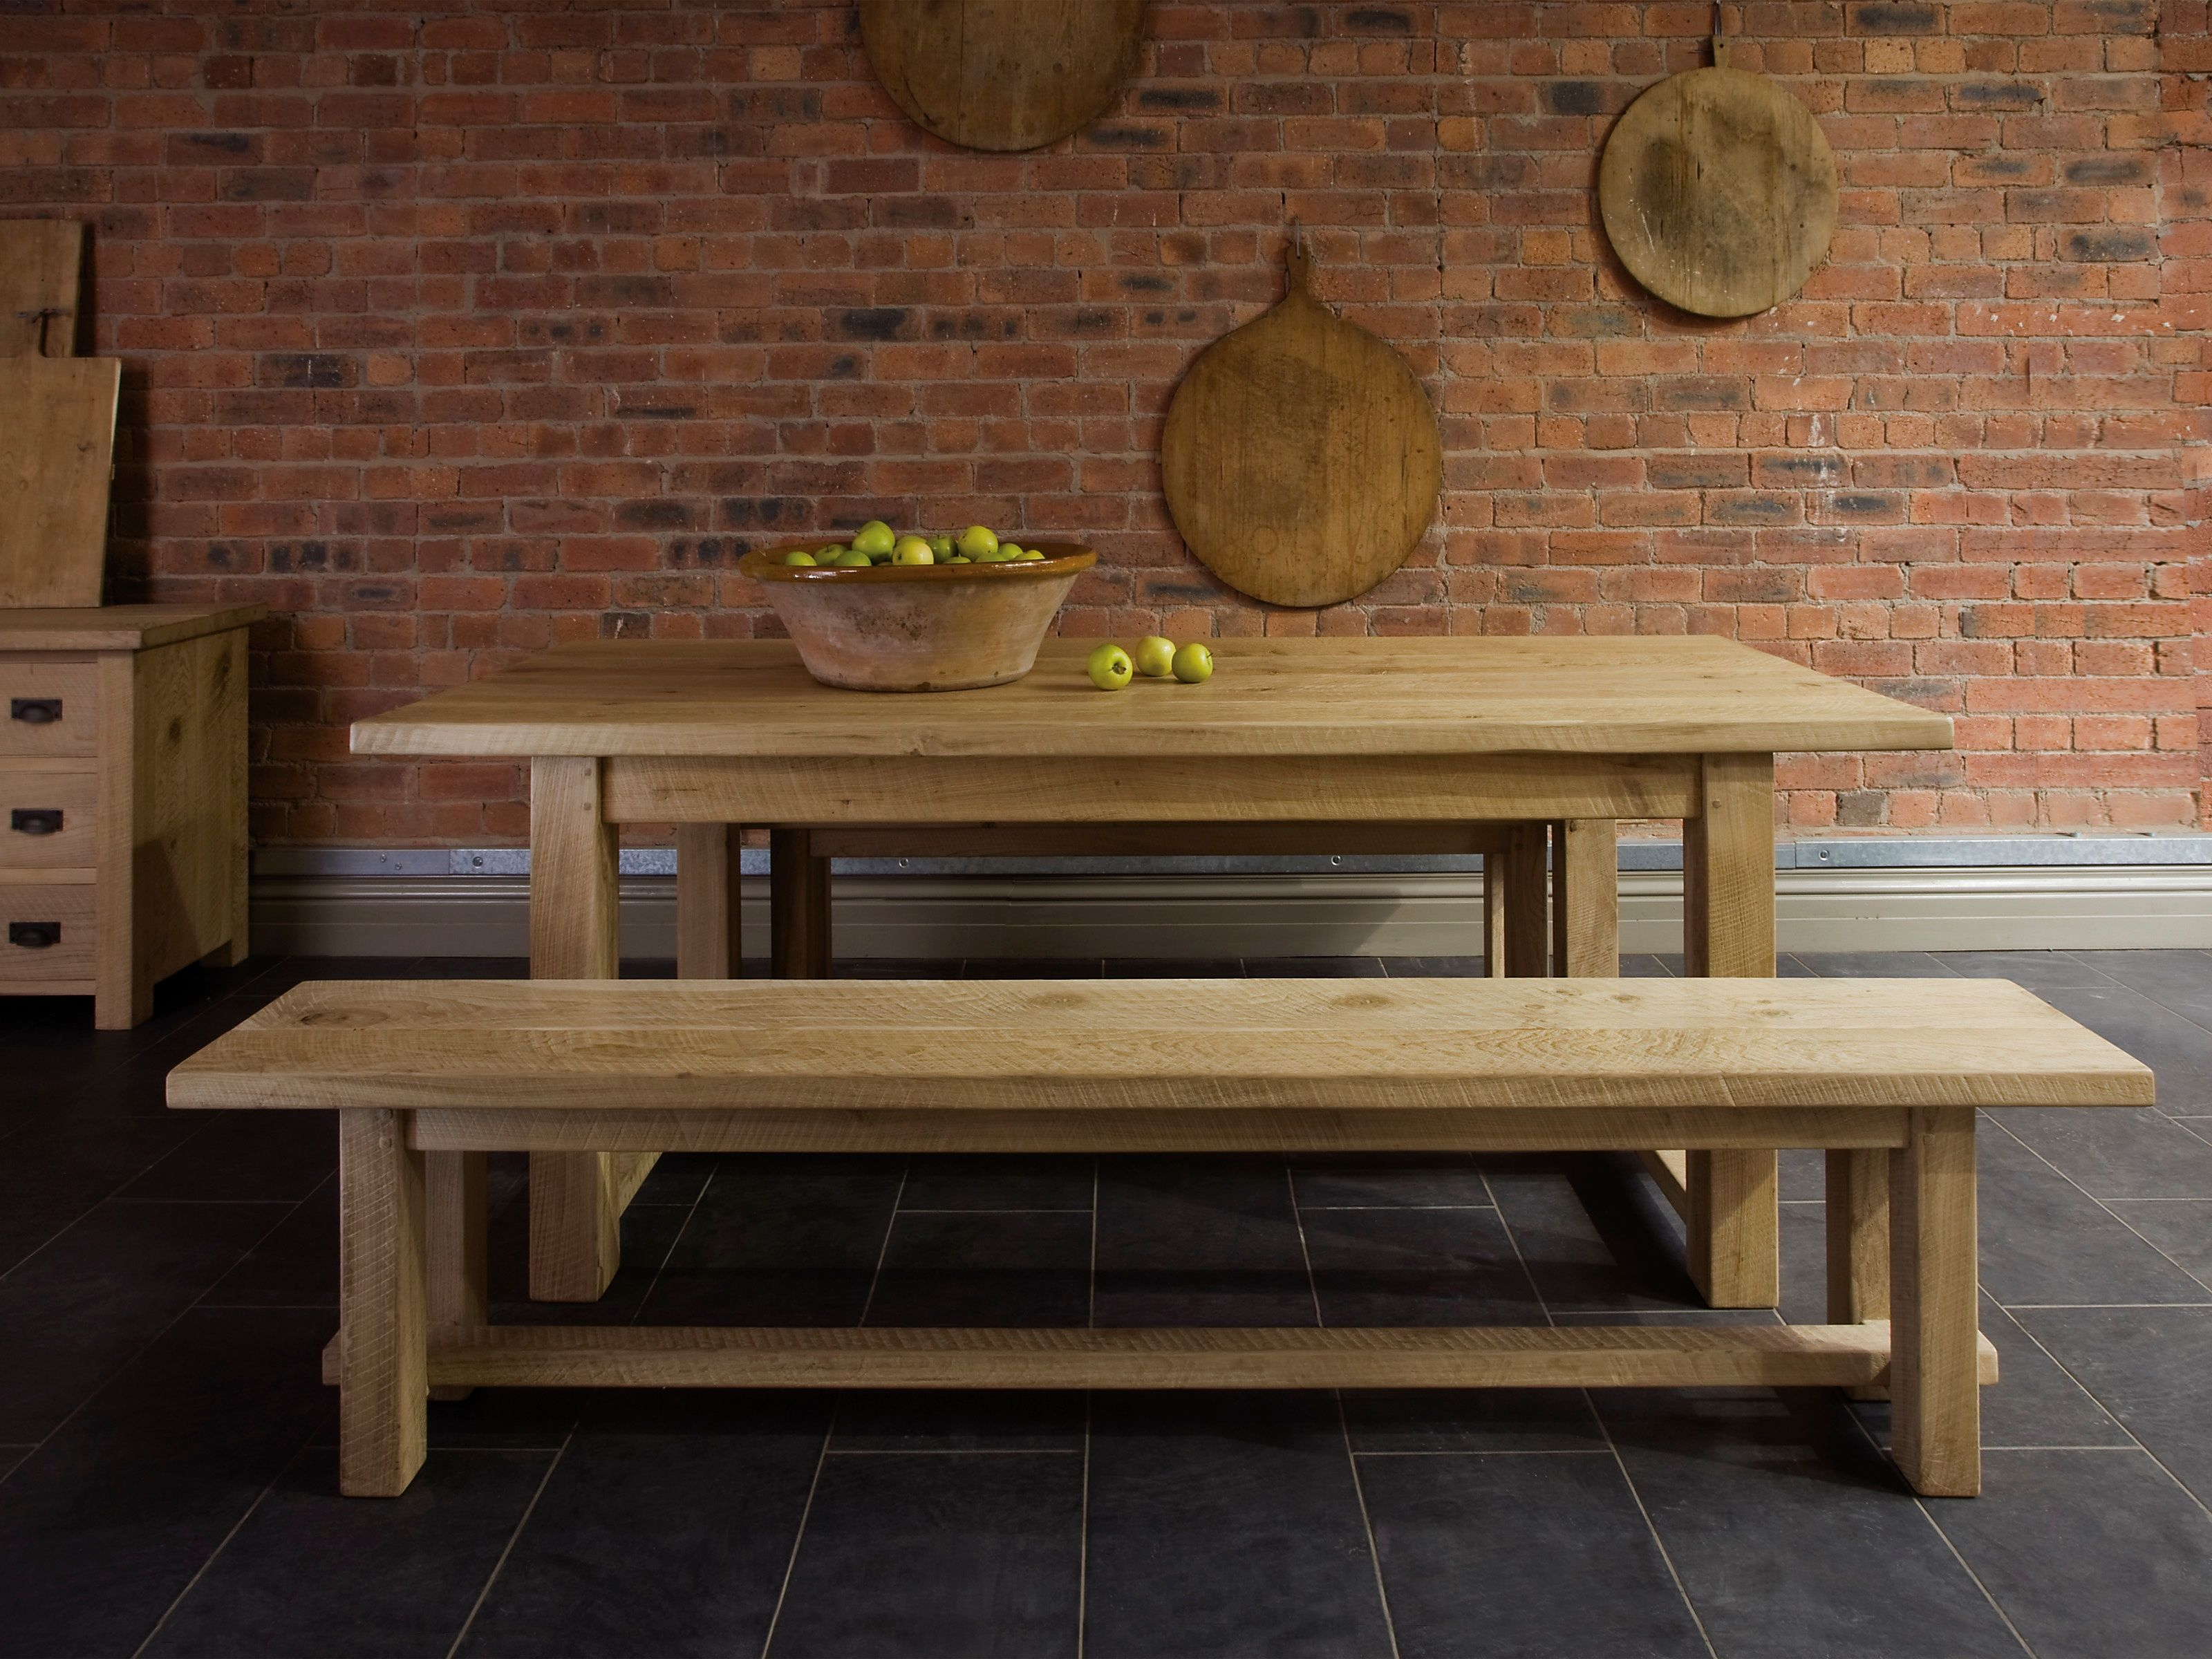 kitchen table benches italian farmhouse kitchen table image of on ideas gallery rustic kitchen table with